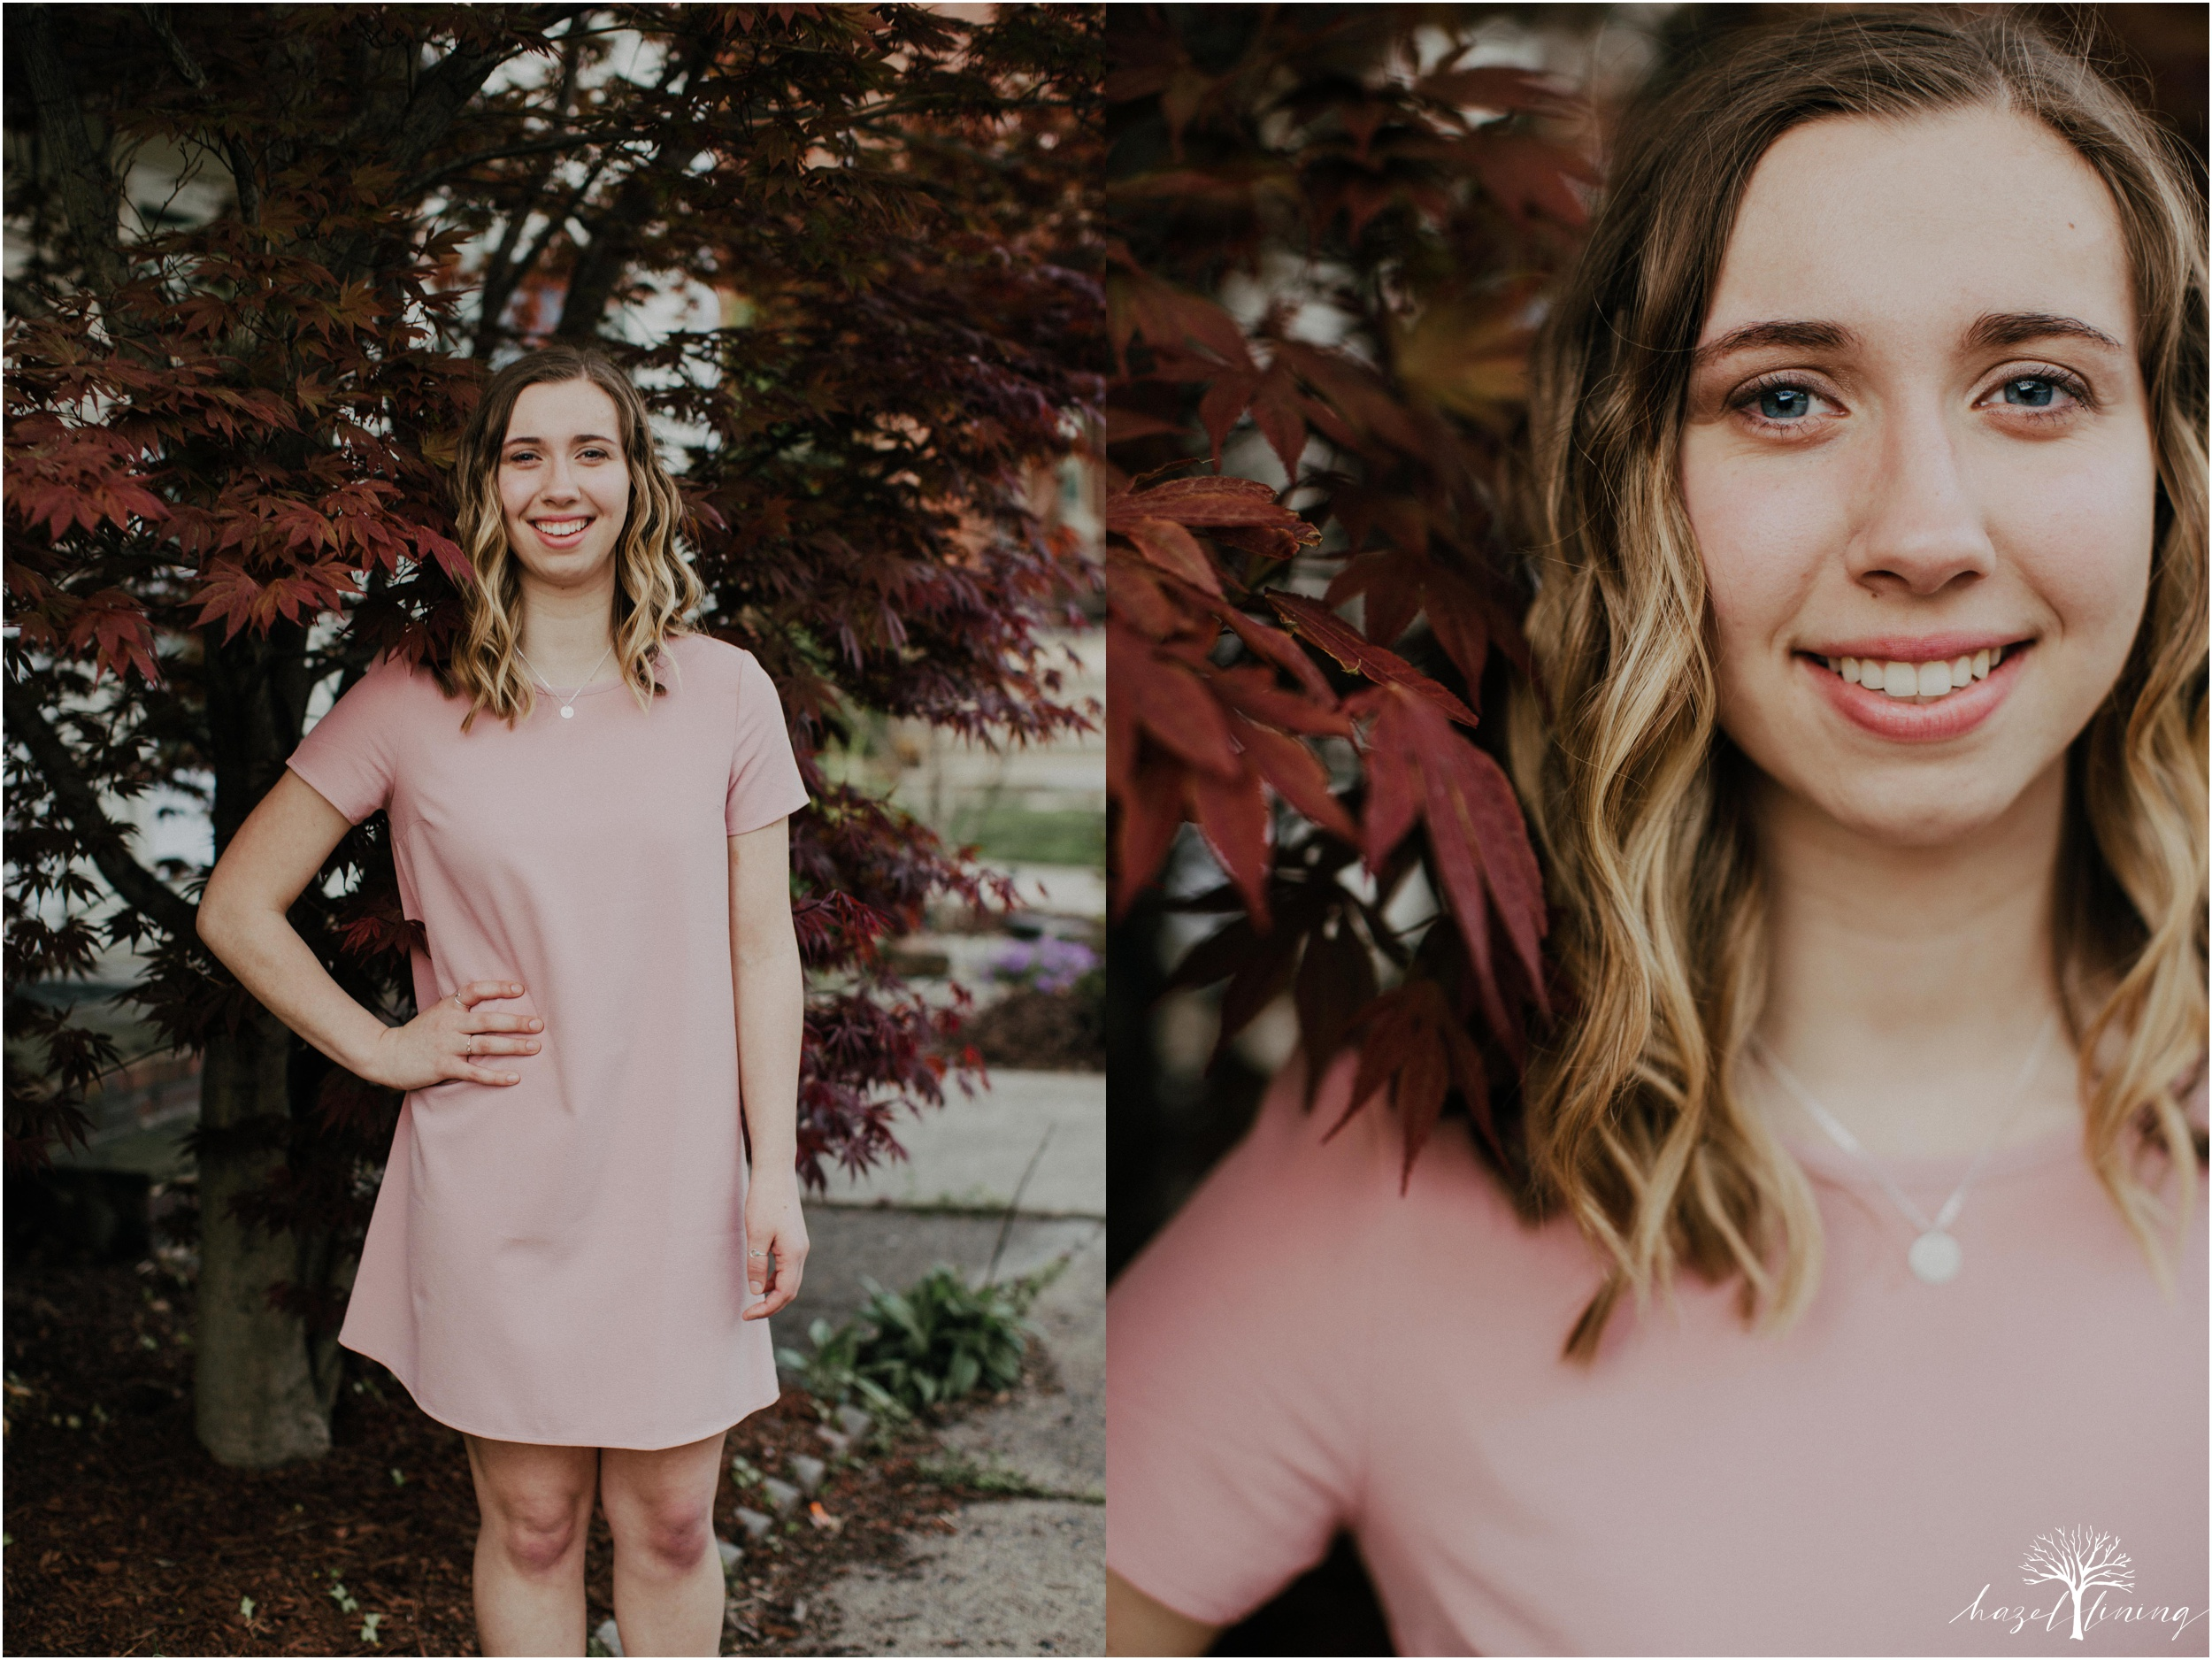 maddie-kiser-senior-portrait-session-doylestown-pennsylvania-spring-hazel-lining-photography-destination-elopement-wedding-engagement-photography-year-in-review_0025.jpg